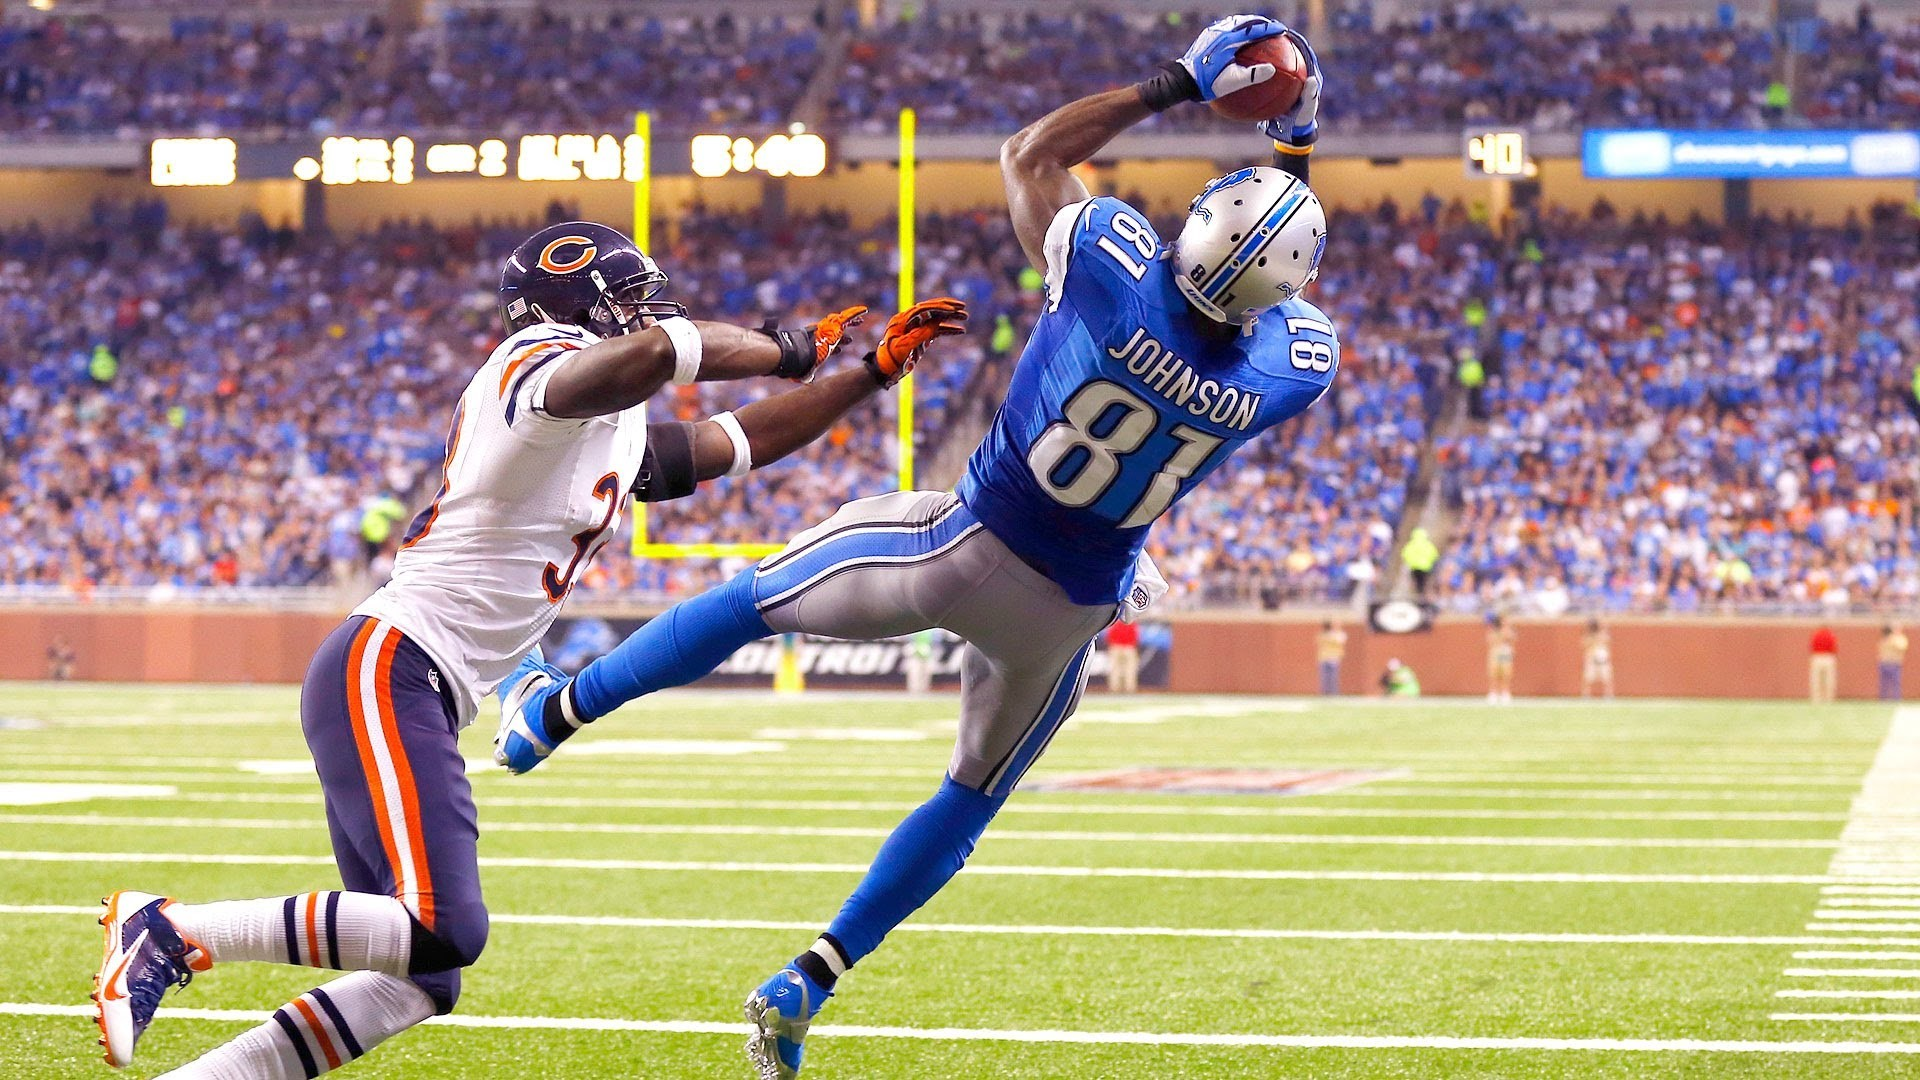 Nfl Players Wallpaper Pictures to Pin on Pinterest PinsDaddy | HD Wallpapers  | Pinterest | Wallpaper